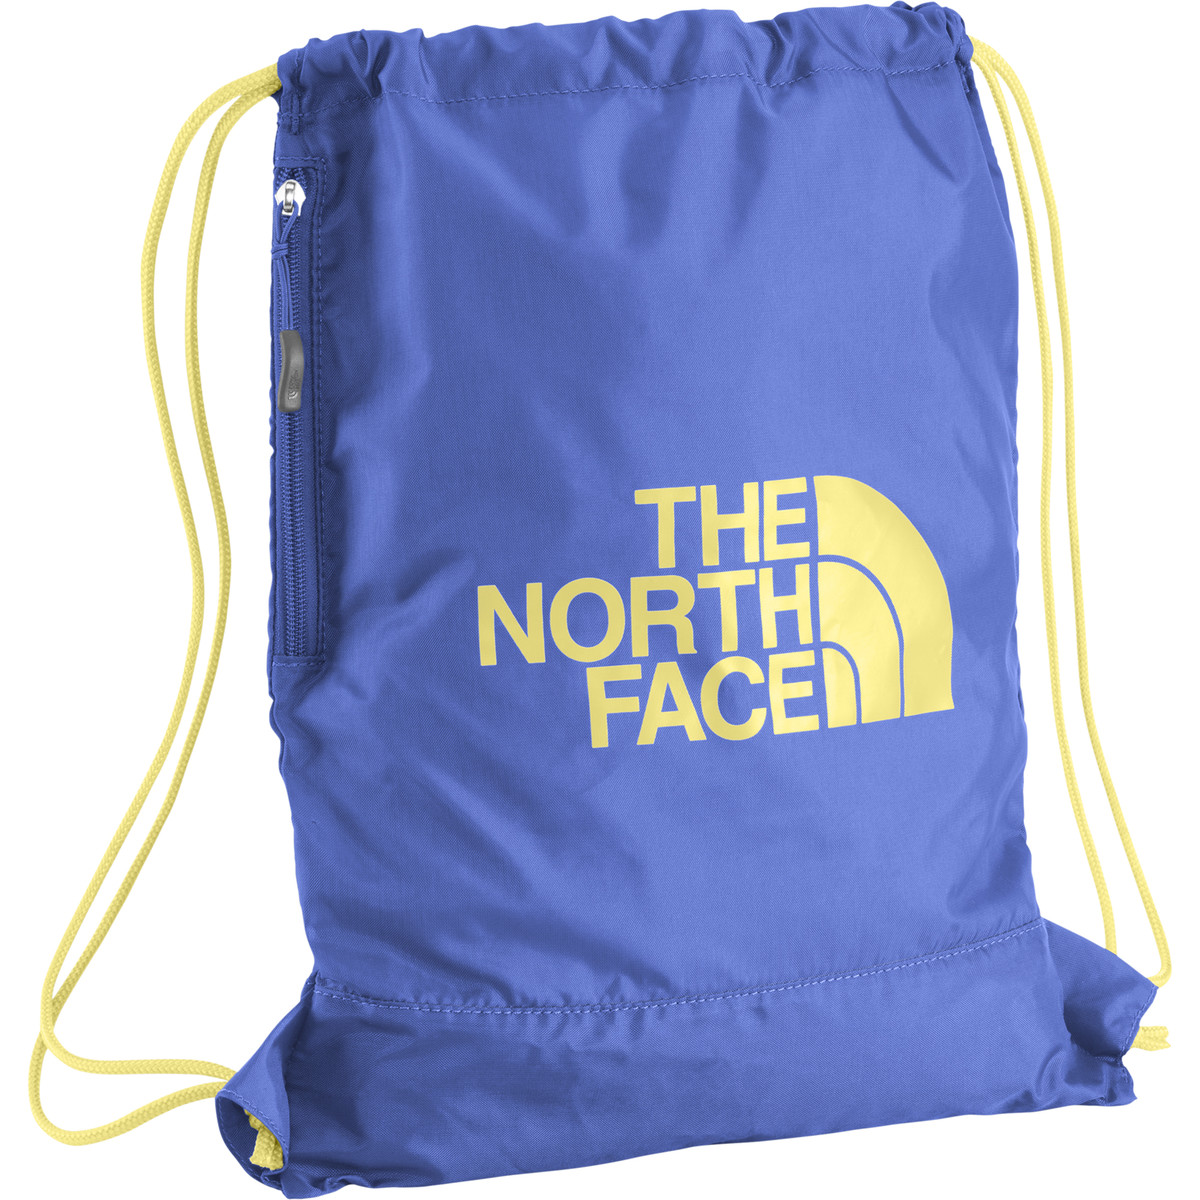 The North Face Sack Pack